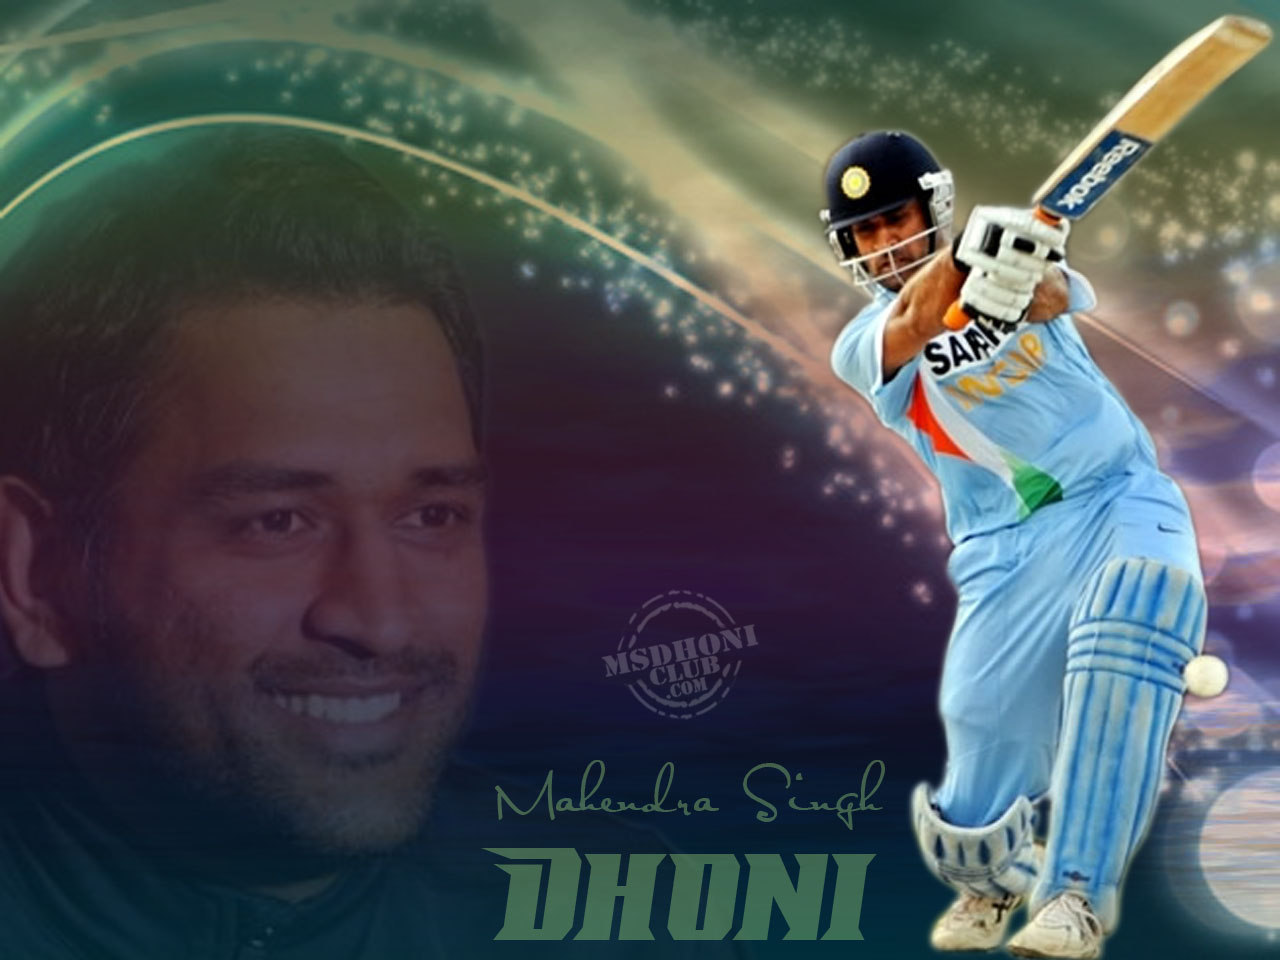 Dhoni Csk Wallpapers For Windows 7 Chennai Super Kings